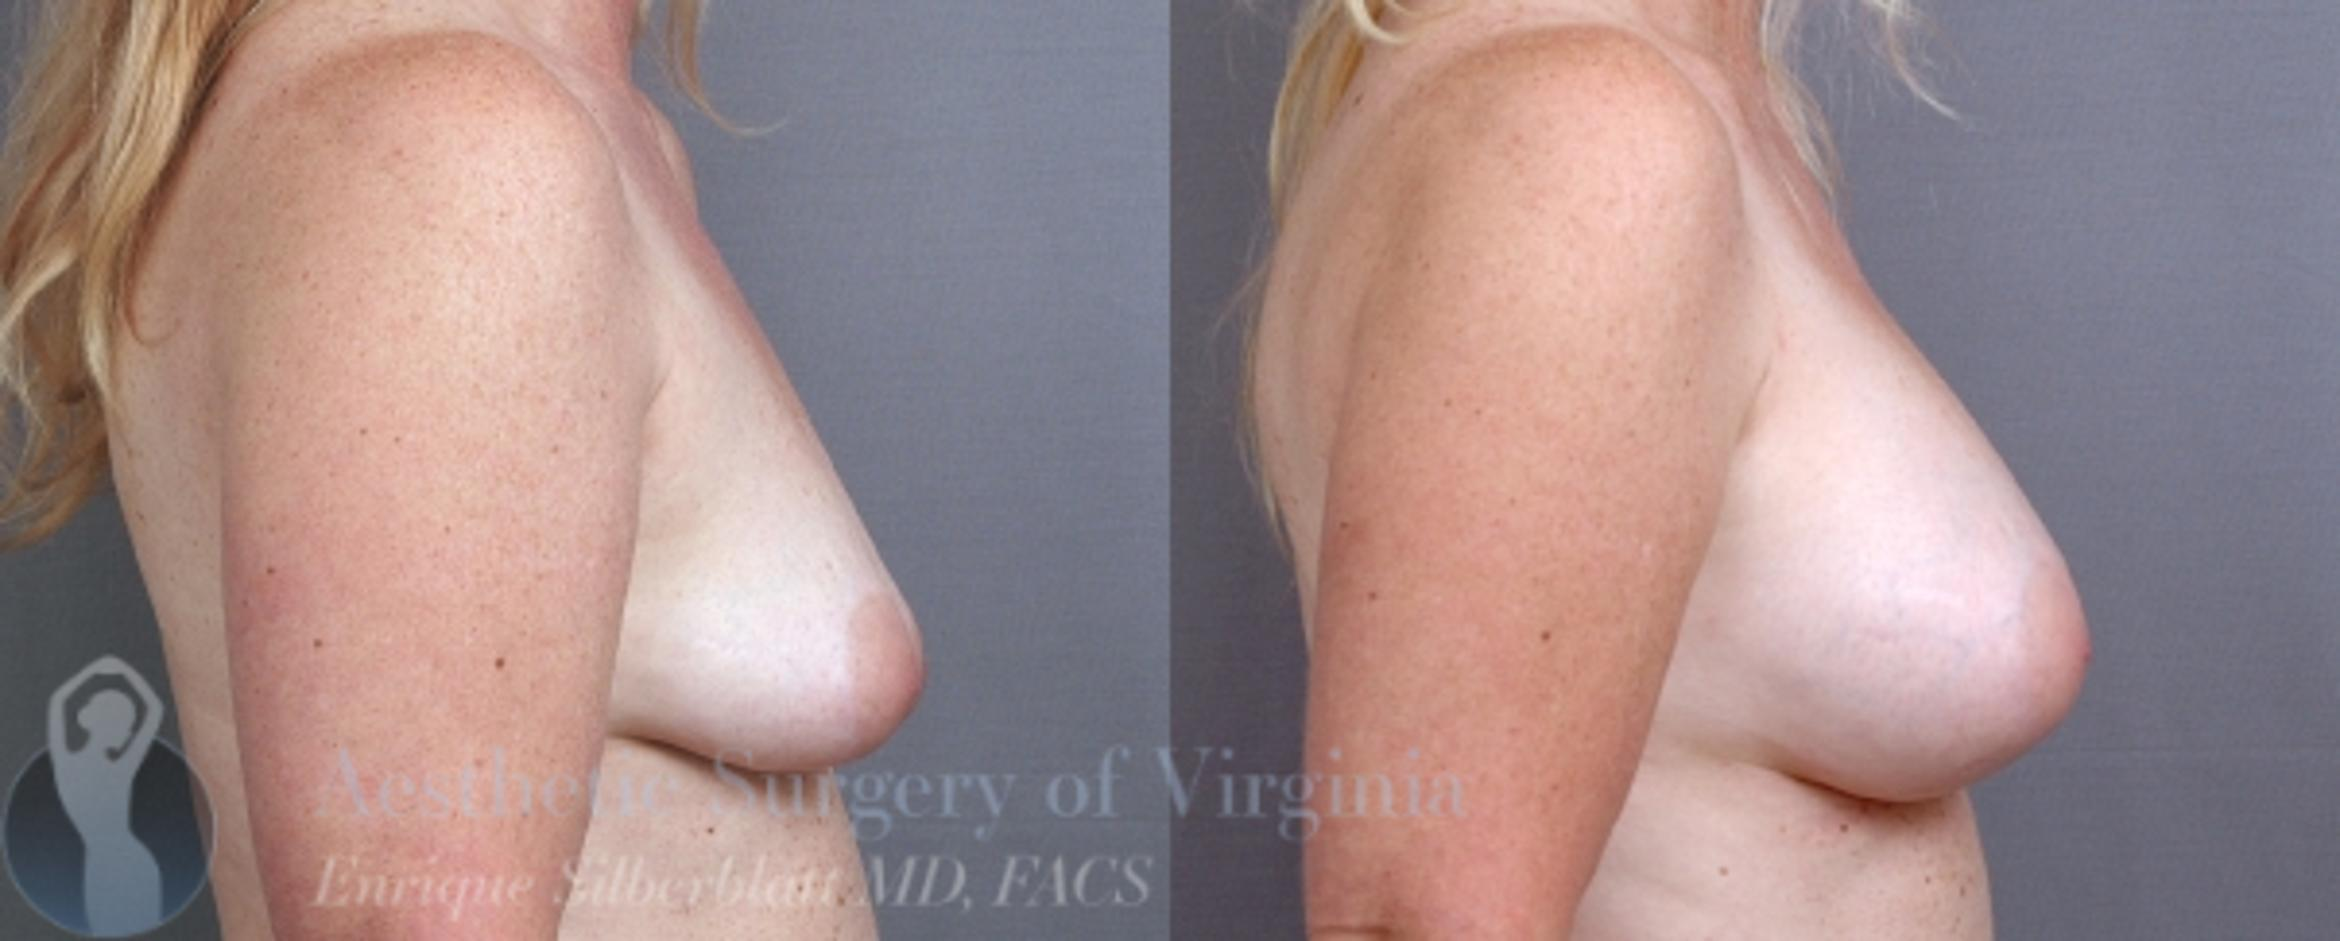 Breast Augmentation Case 9 Before & After View #5 | Roanoke, VA | Aesthetic Surgery of Virginia: Enrique Silberblatt, MD